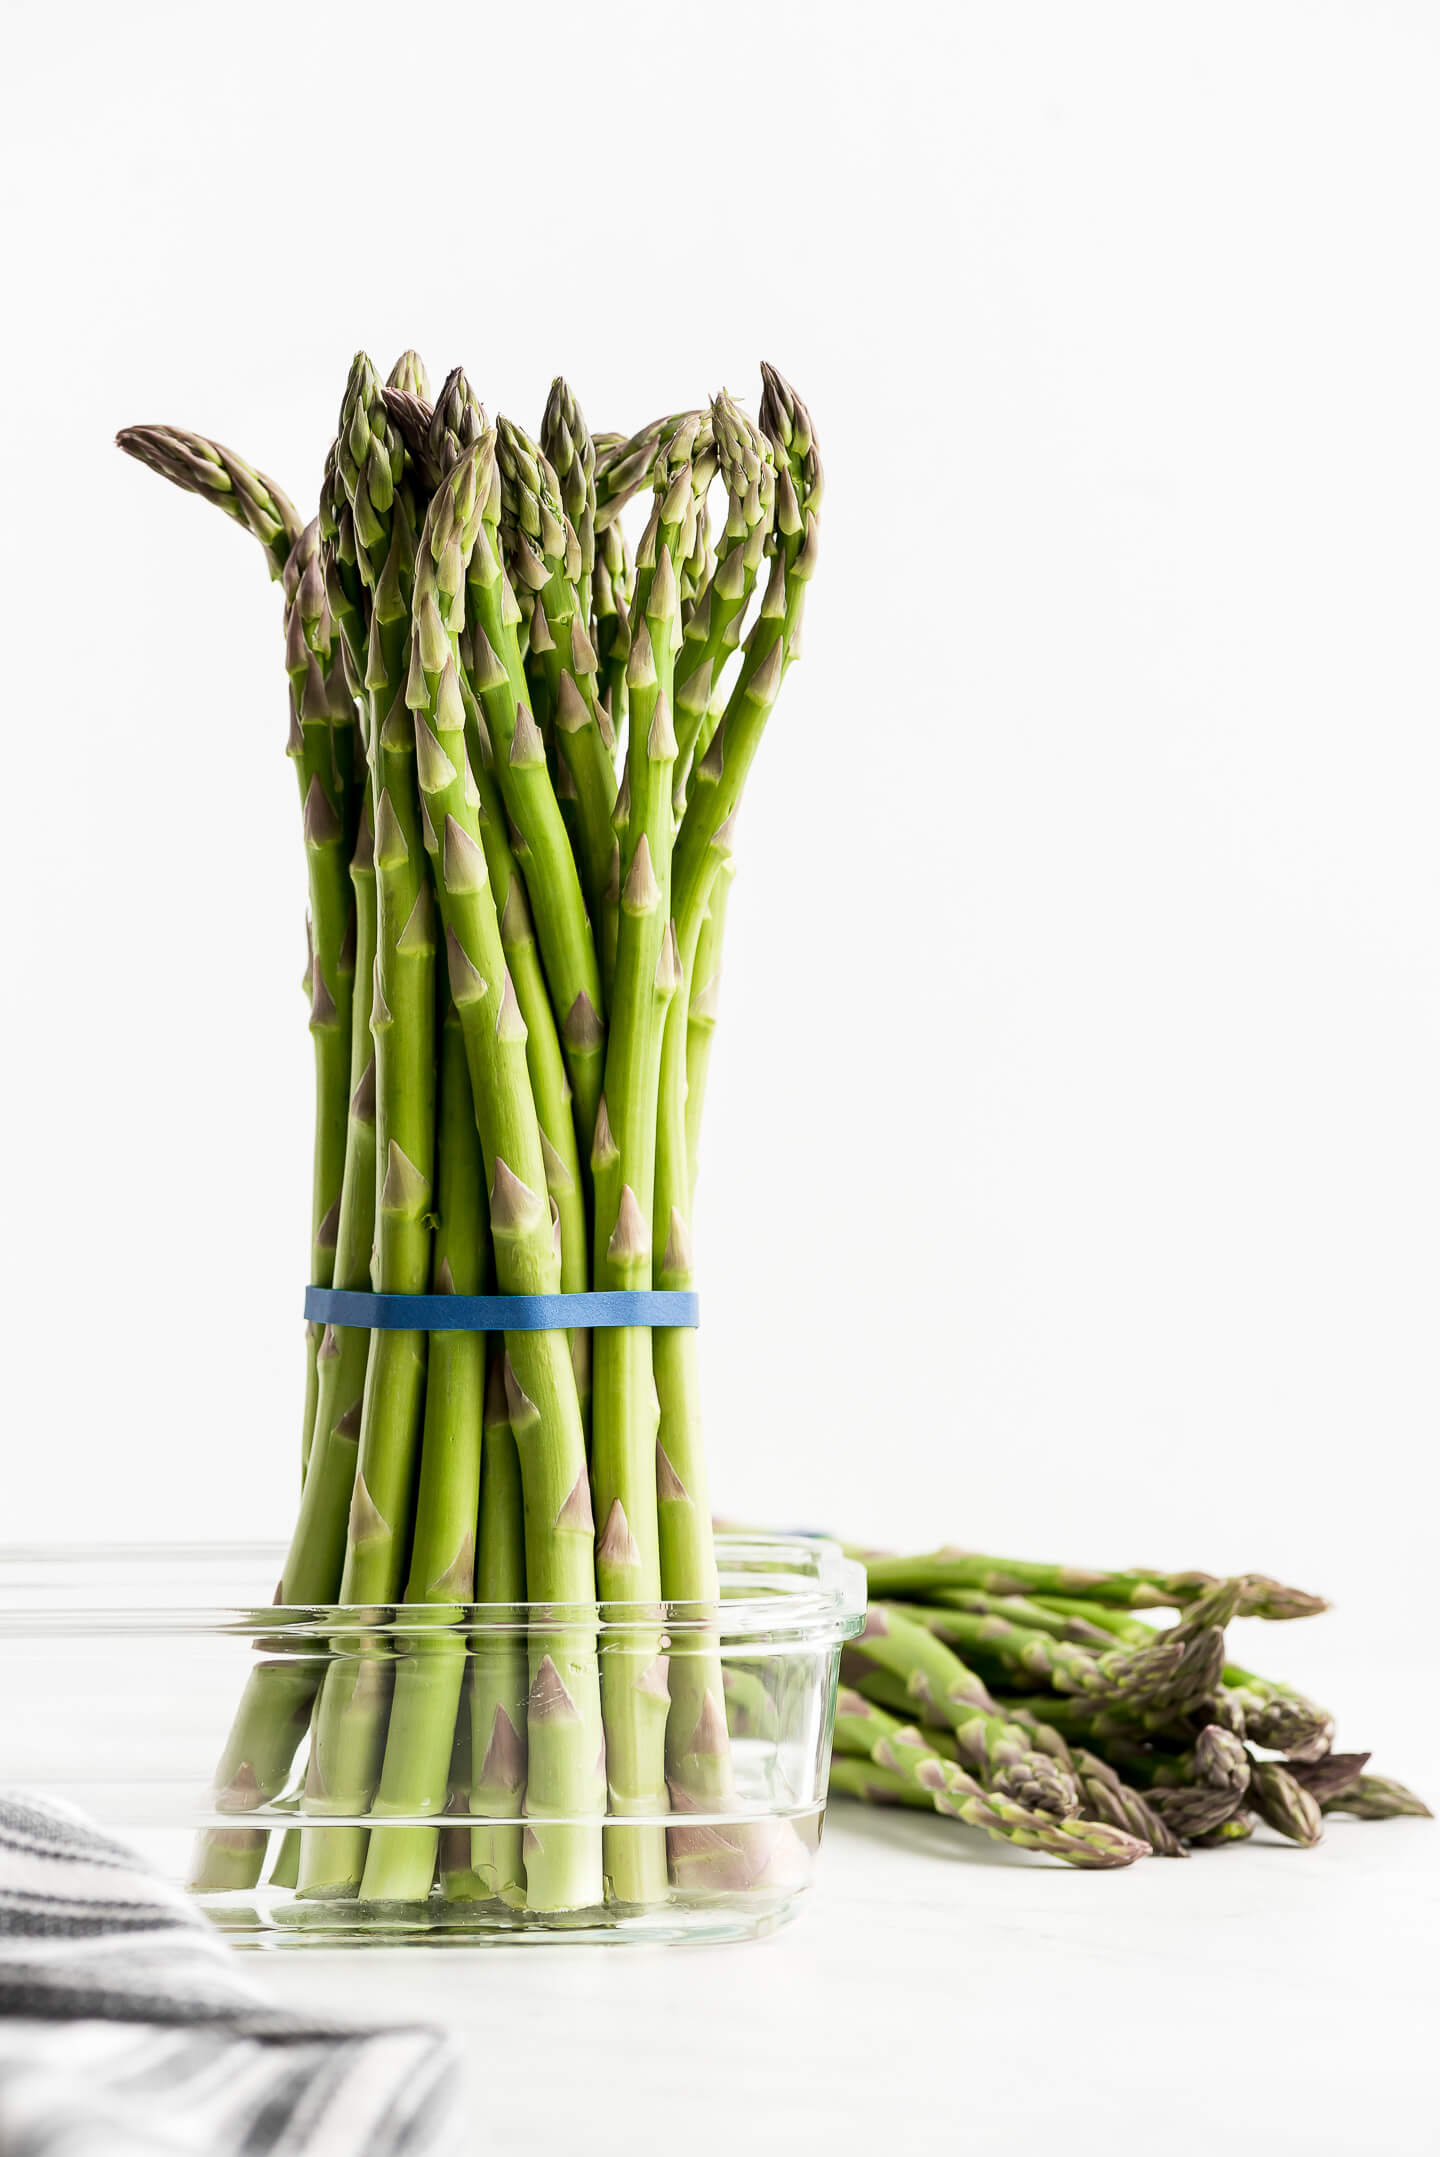 Asparagus spears bundled together with a rubber band and sitting upright in a container of water.